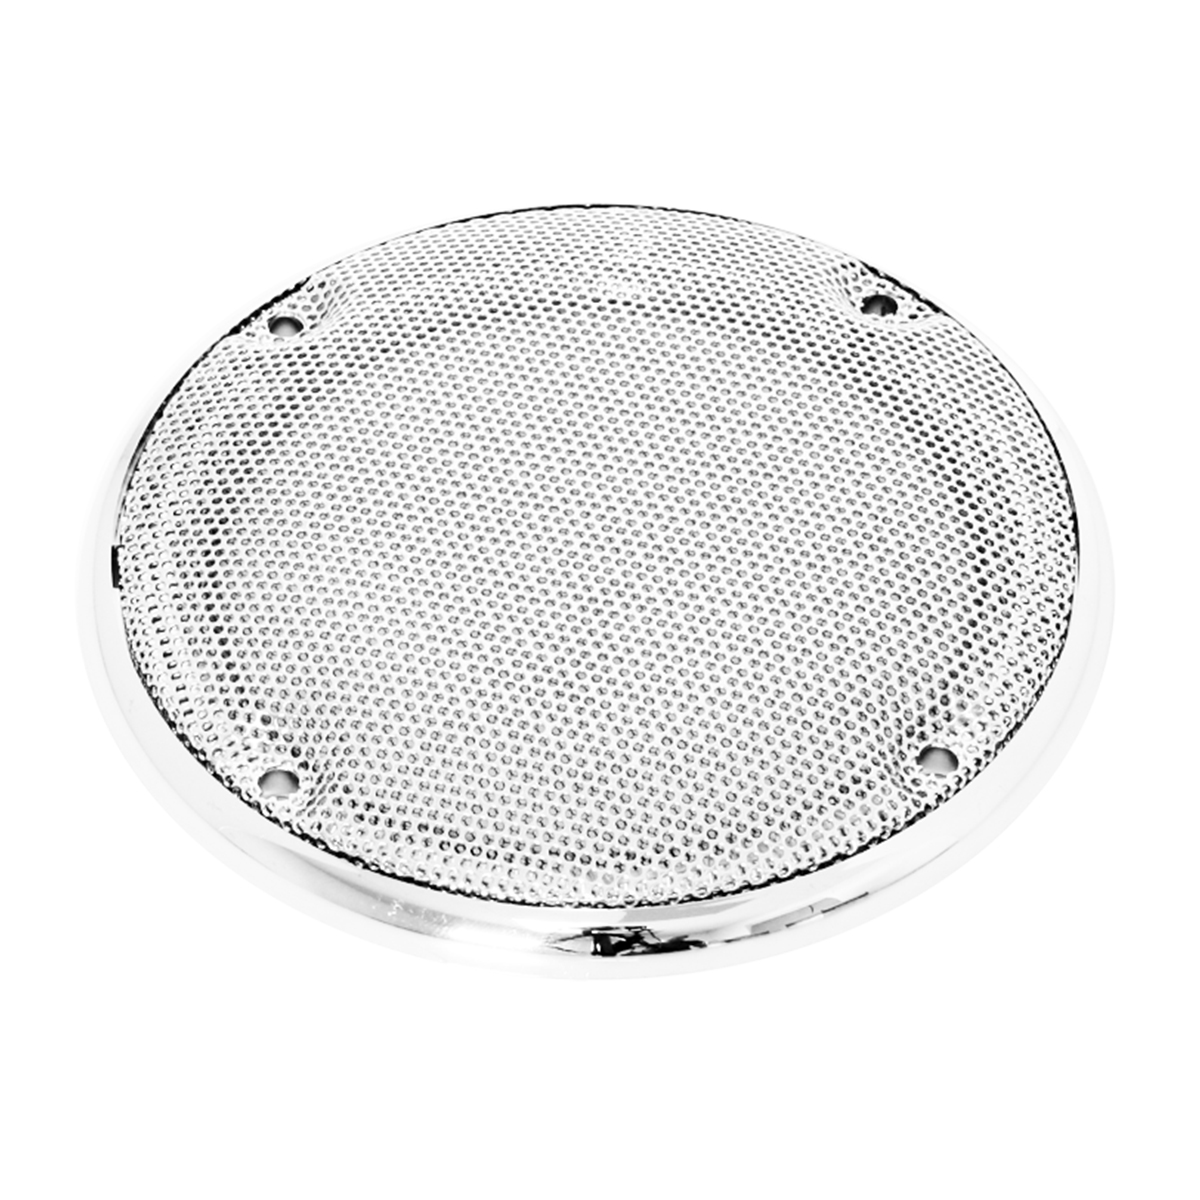 52023 Round Above Dash Speaker Cover for Kenworth